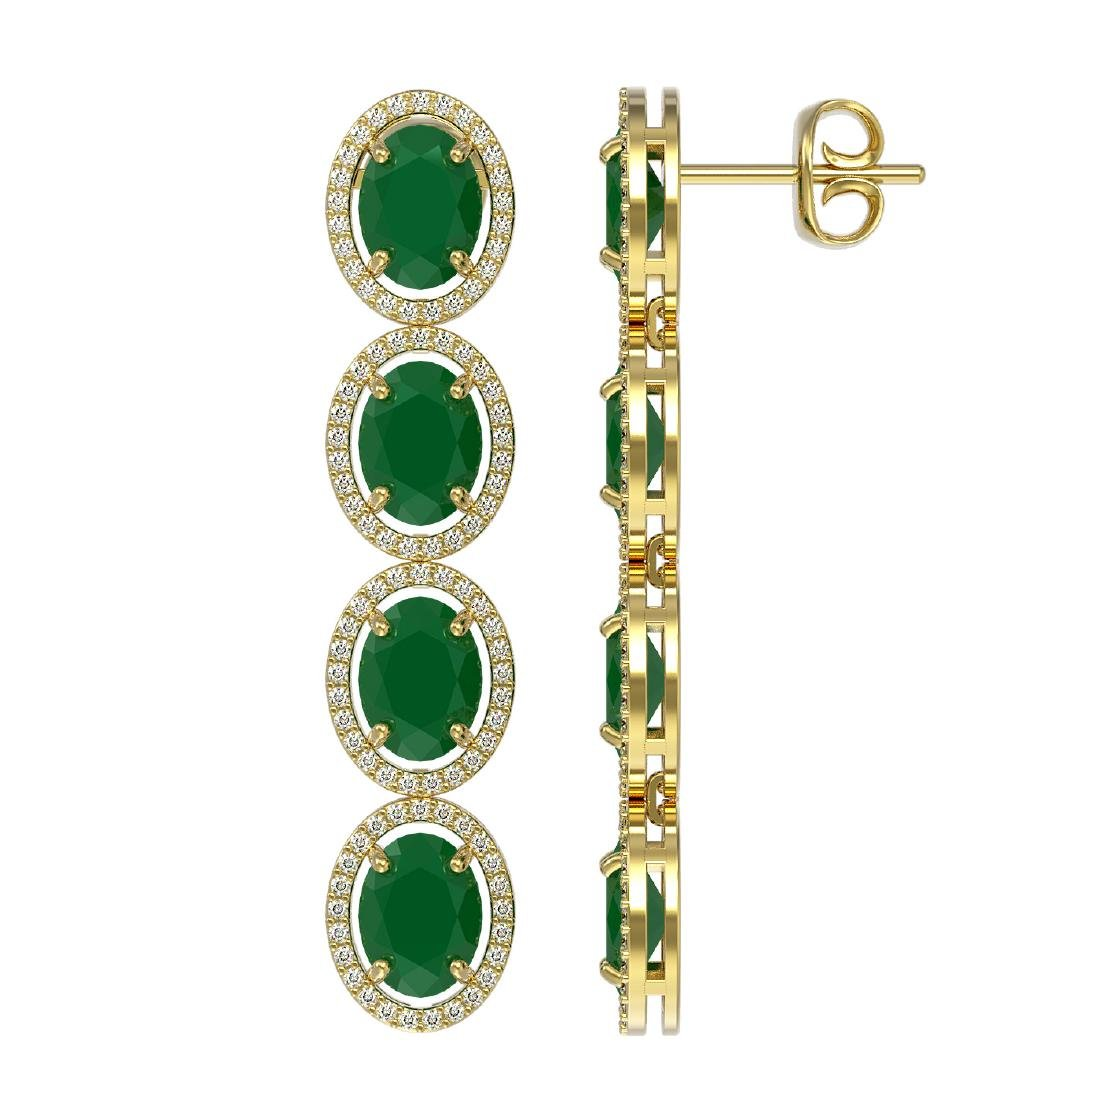 15.68 ctw Emerald & Diamond Halo Earrings 10K Yellow - 2